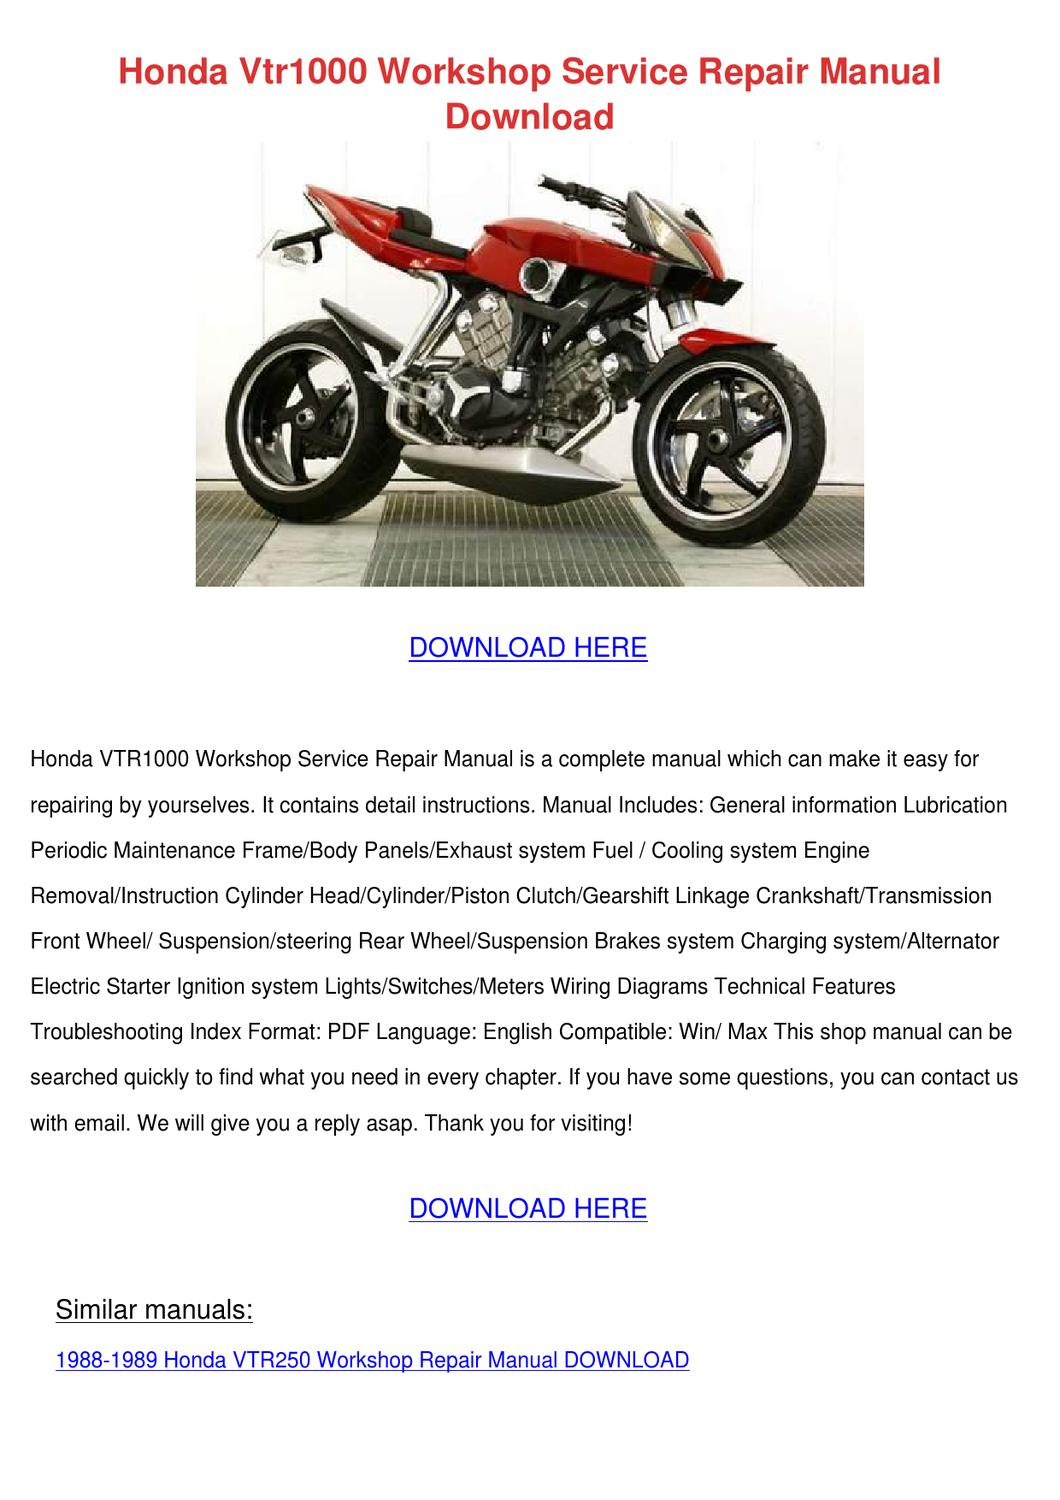 Honda Vtr1000 Workshop Service Repair Manual By Chetbromley Issuu